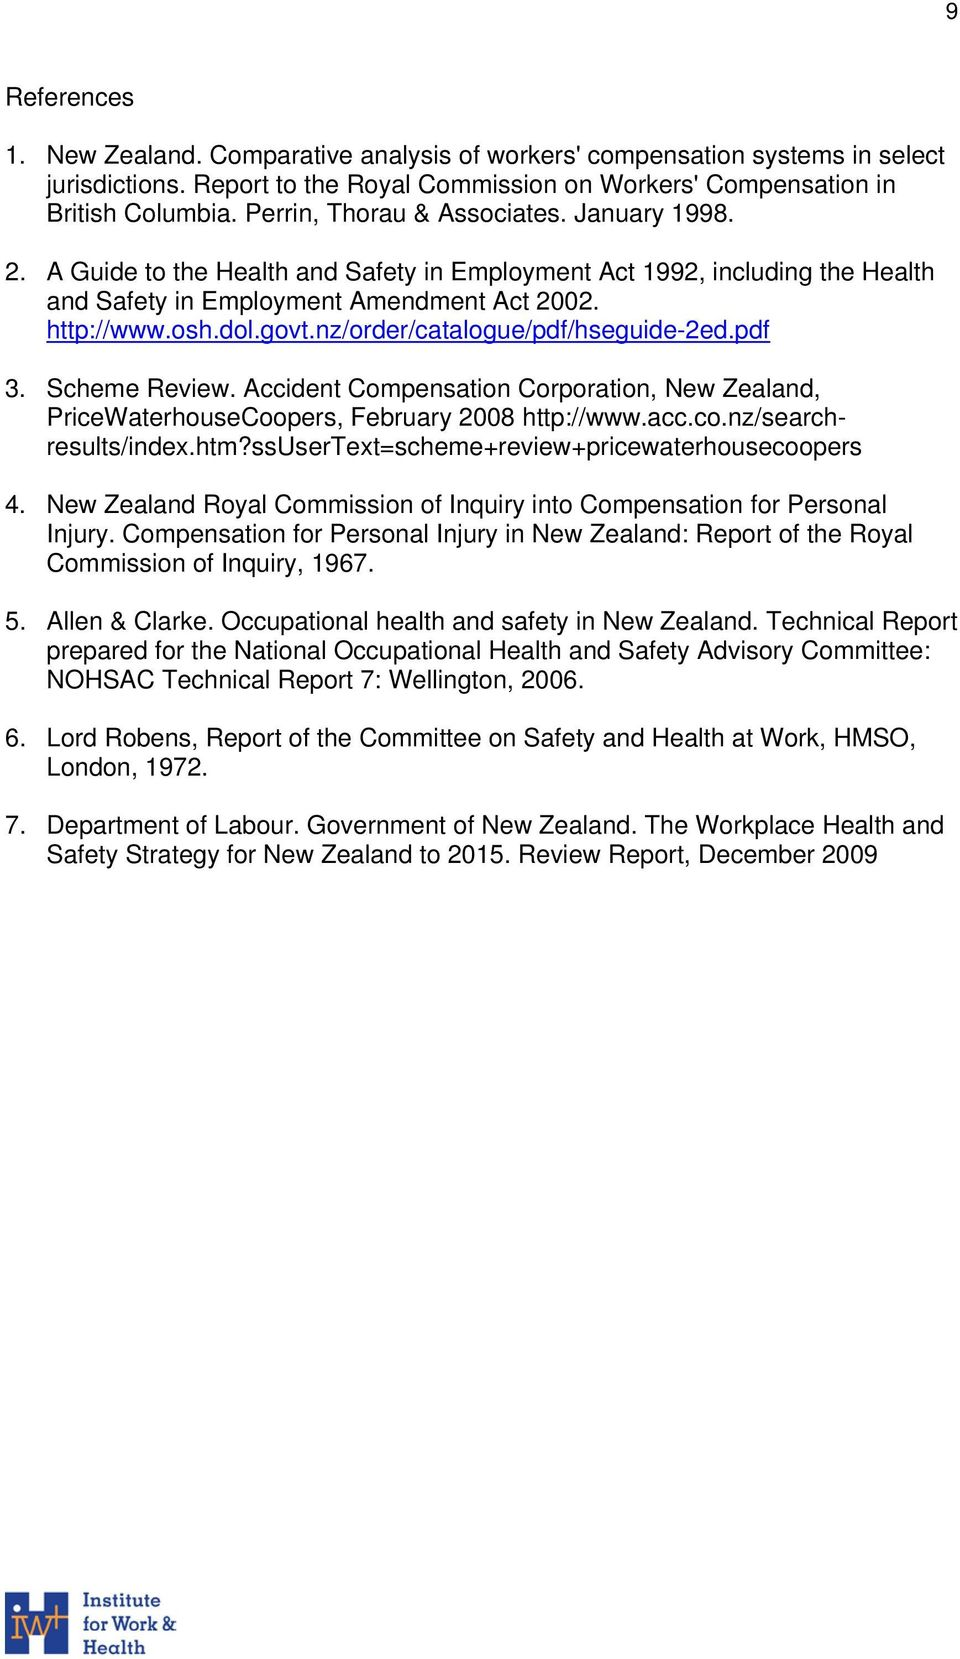 nz/order/catalogue/pdf/hseguide-2ed.pdf 3. Scheme Review. Accident Compensation Corporation, New Zealand, PriceWaterhouseCoopers, February 2008 http://www.acc.co.nz/searchresults/index.htm?